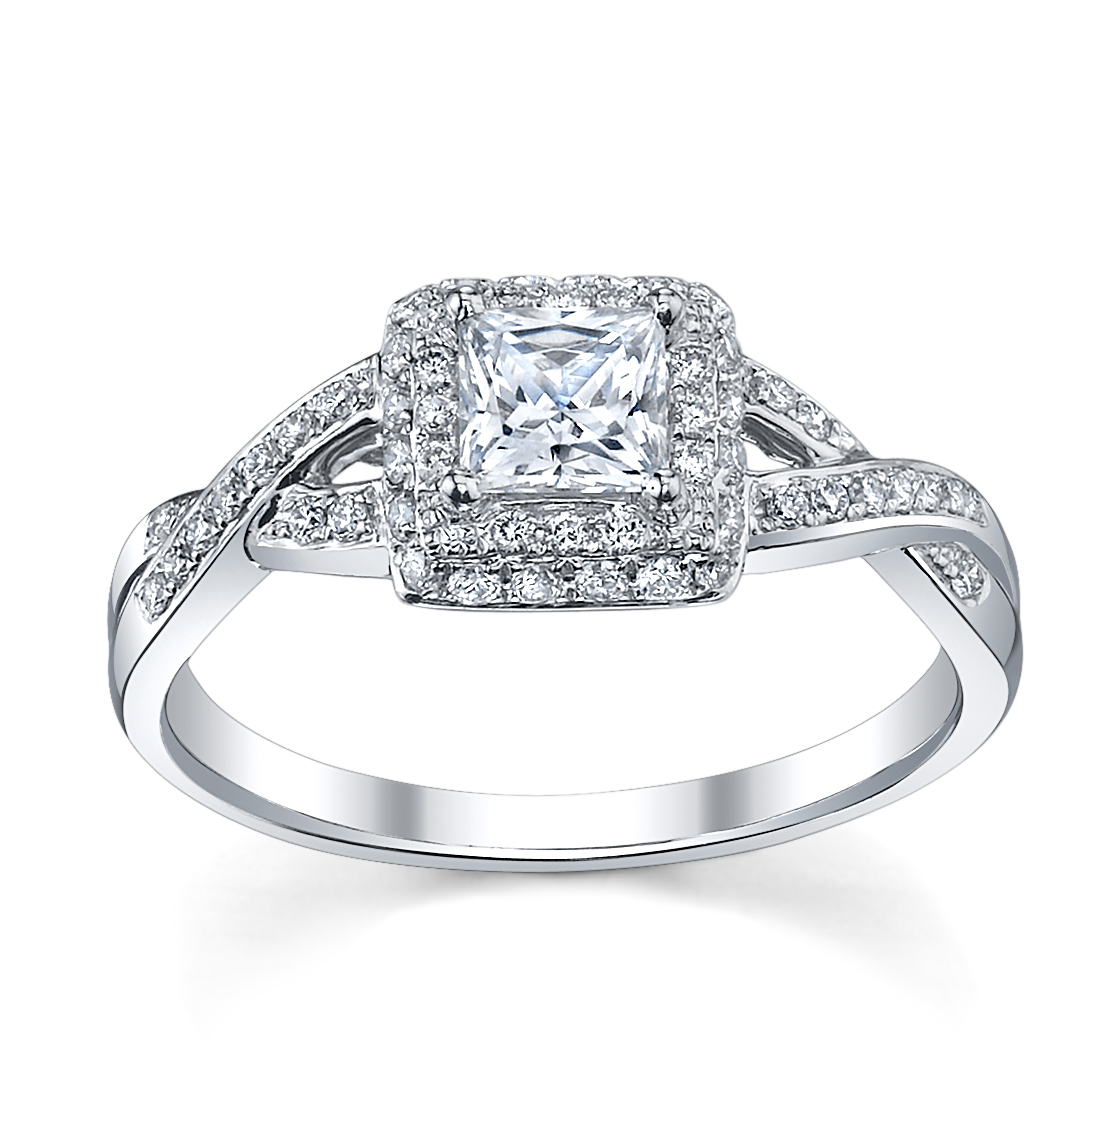 harriet rings ring style kelsall twist engagement